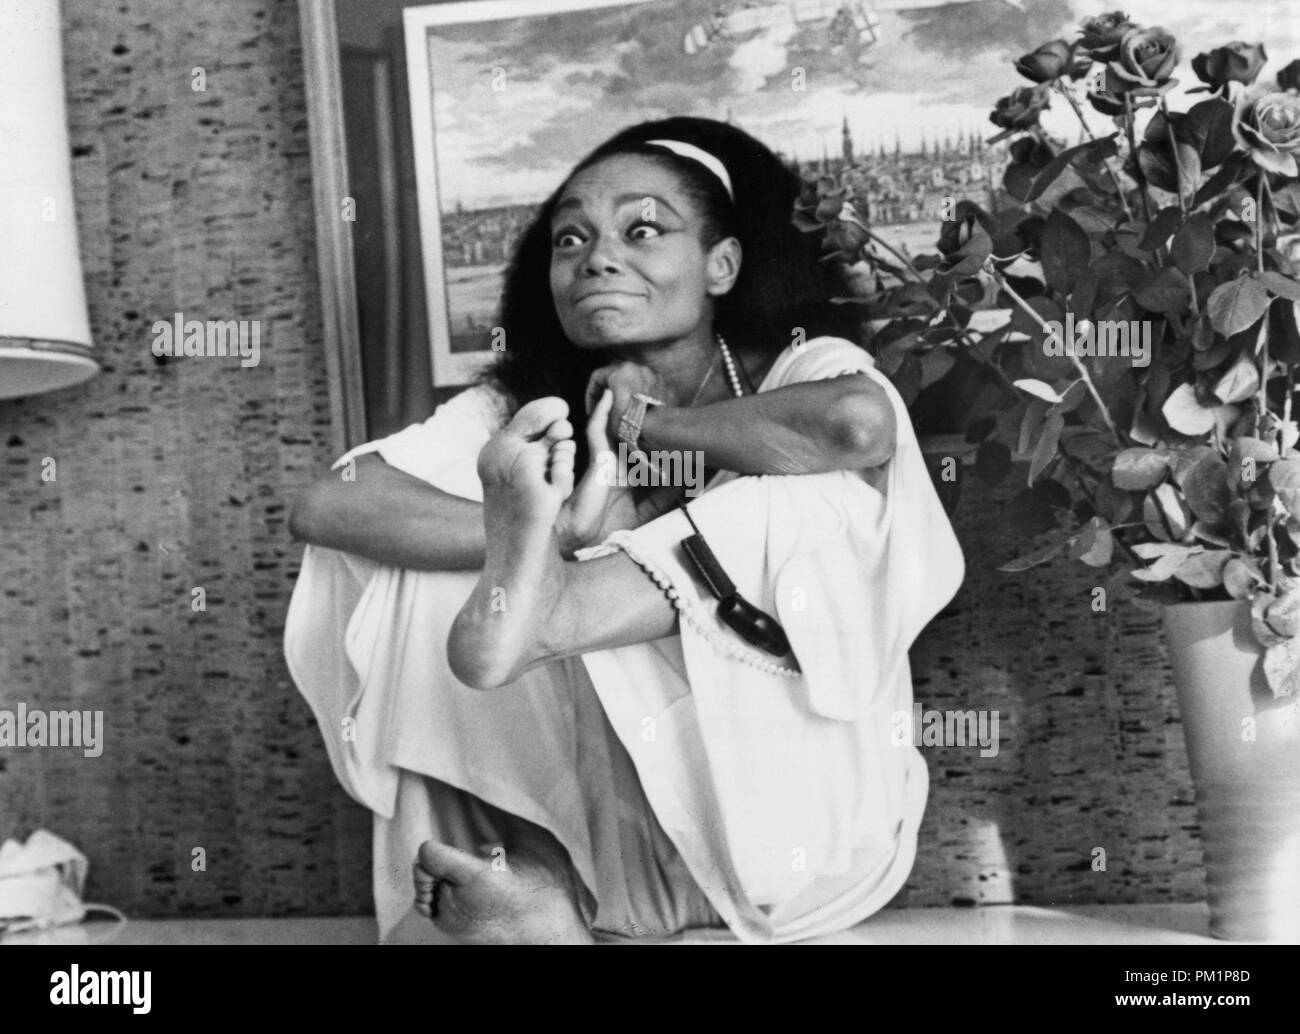 eartha kitt youngeartha kitt this is my life, eartha kitt i want to be evil, eartha kitt catwoman, eartha kitt - where is my man, eartha kitt santa baby, eartha kitt песни, eartha kitt c'est si bon, eartha kitt daughter, eartha kitt where is my man mp3, eartha kitt youtube, eartha kitt nobody taught me, eartha kitt this is my life перевод, eartha kitt under the bridges of paris, eartha kitt granddaughter, eartha kitt orson welles, eartha kitt mink schmink, eartha kitt young, eartha kitt this is my life remix, eartha kitt wiki, eartha kitt husband